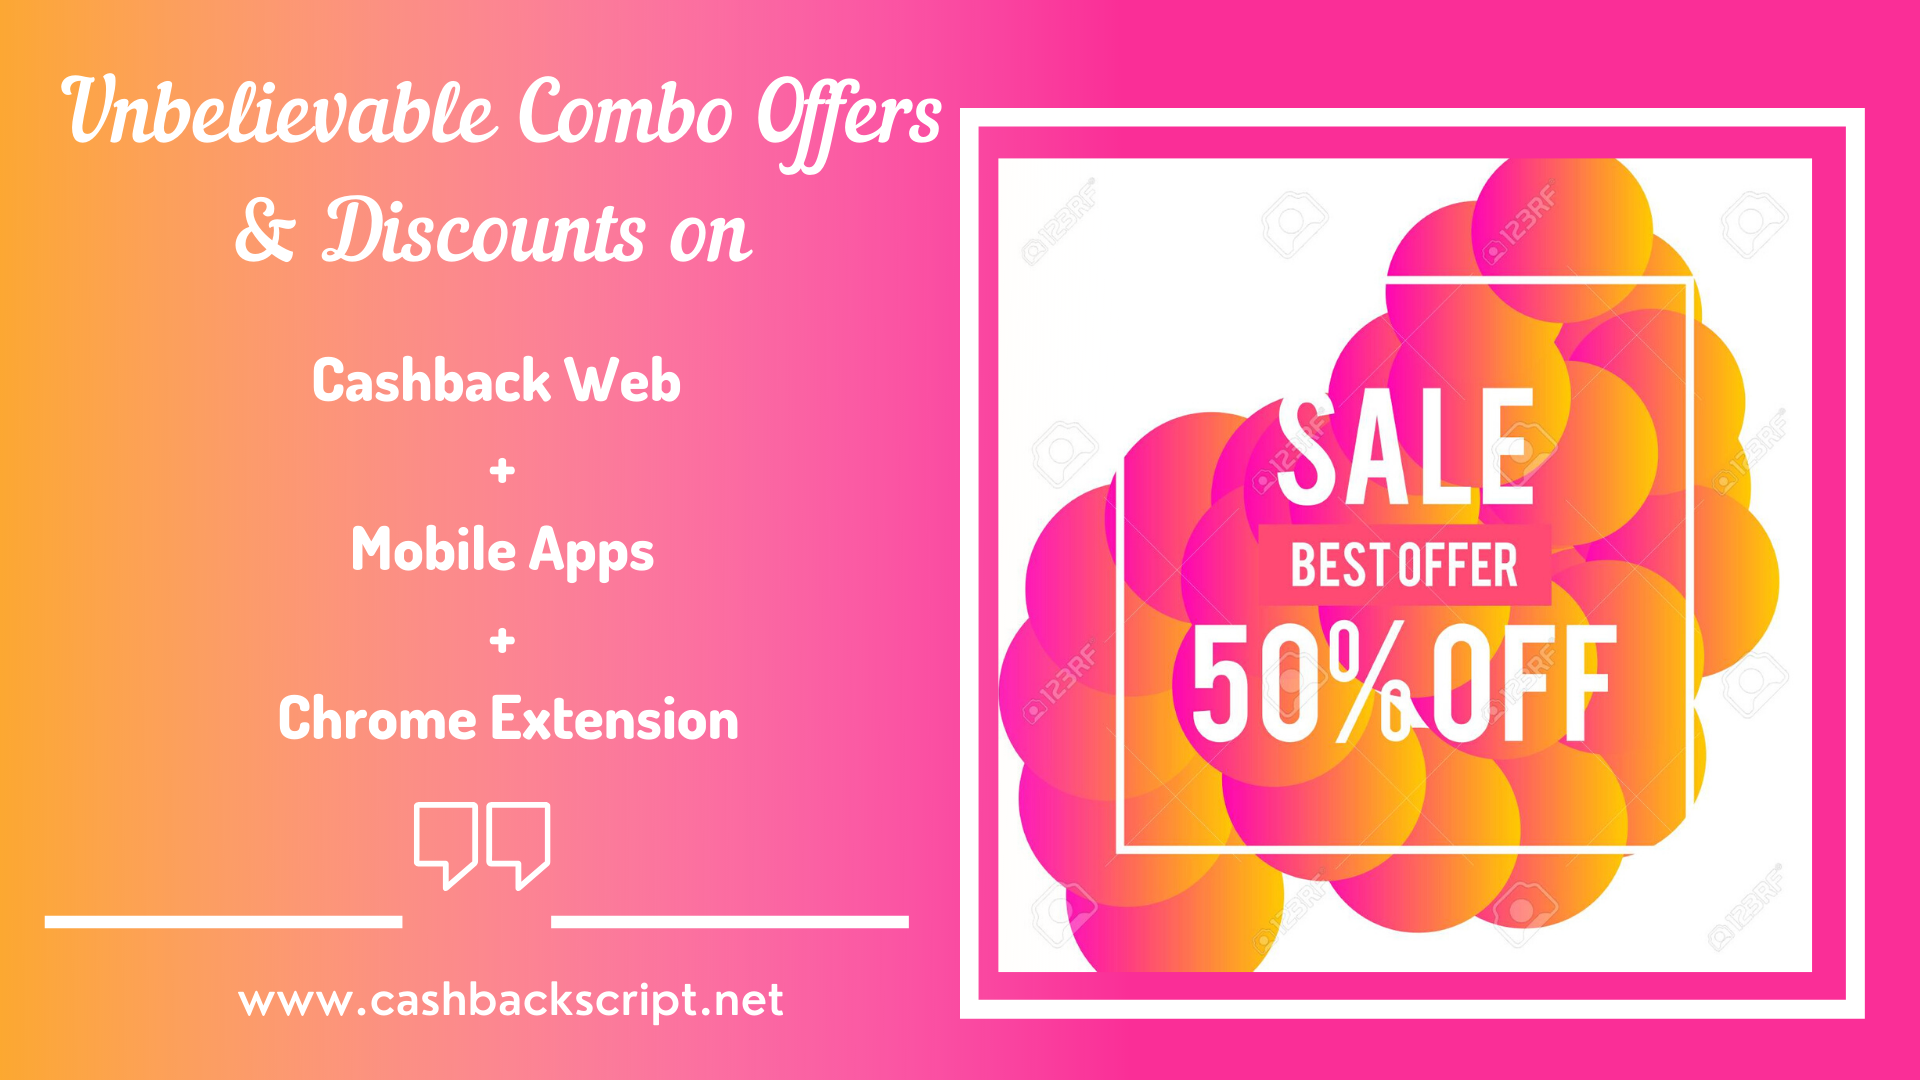 Unbelievable Combo Offers & Discounts on Cashback Web + Mobile App + Chrome Extension